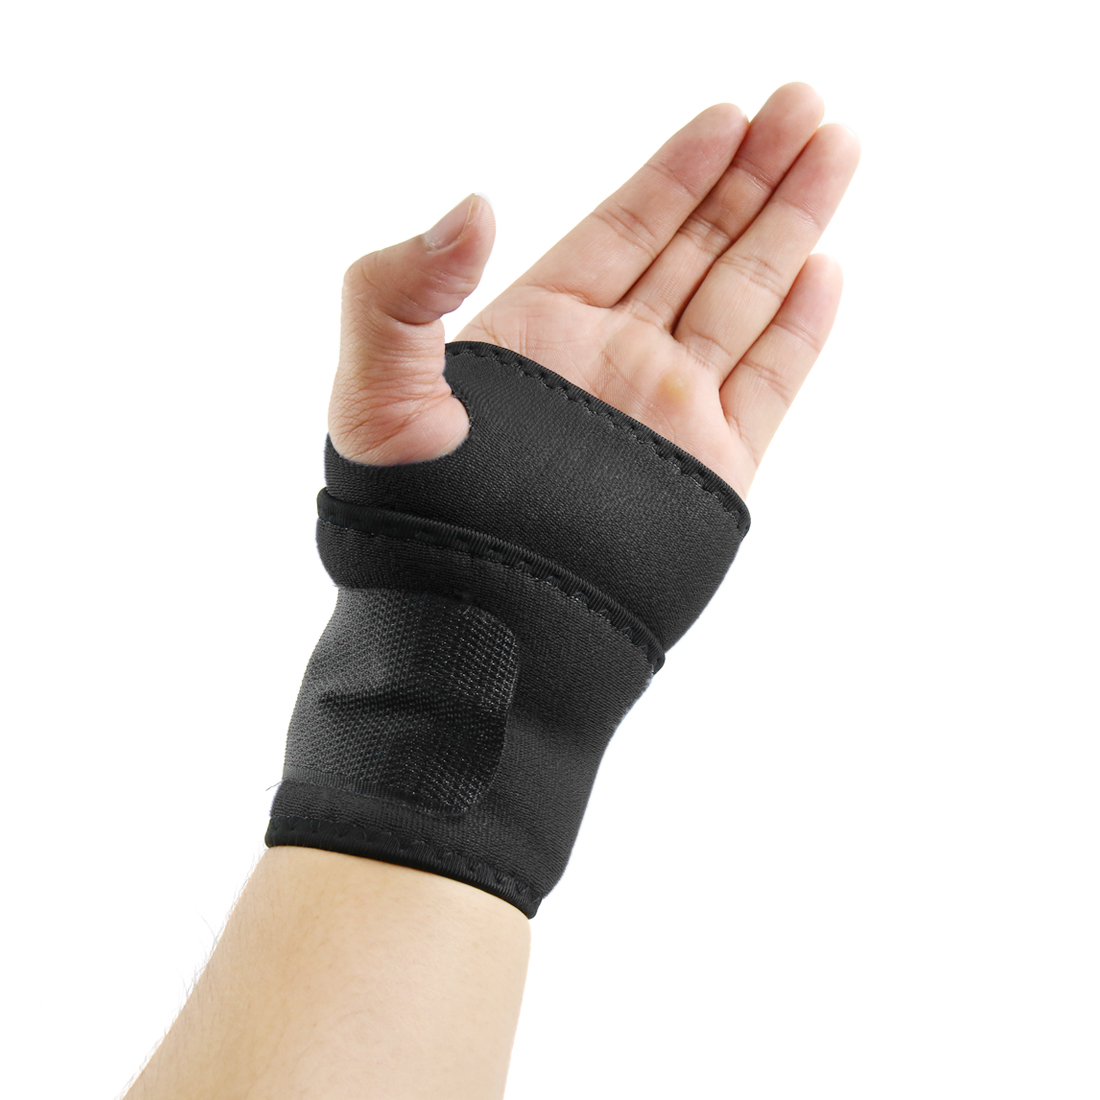 Black Sports Hand Wrist Support Protective Brace Arthritis Sprain Wrapping Band